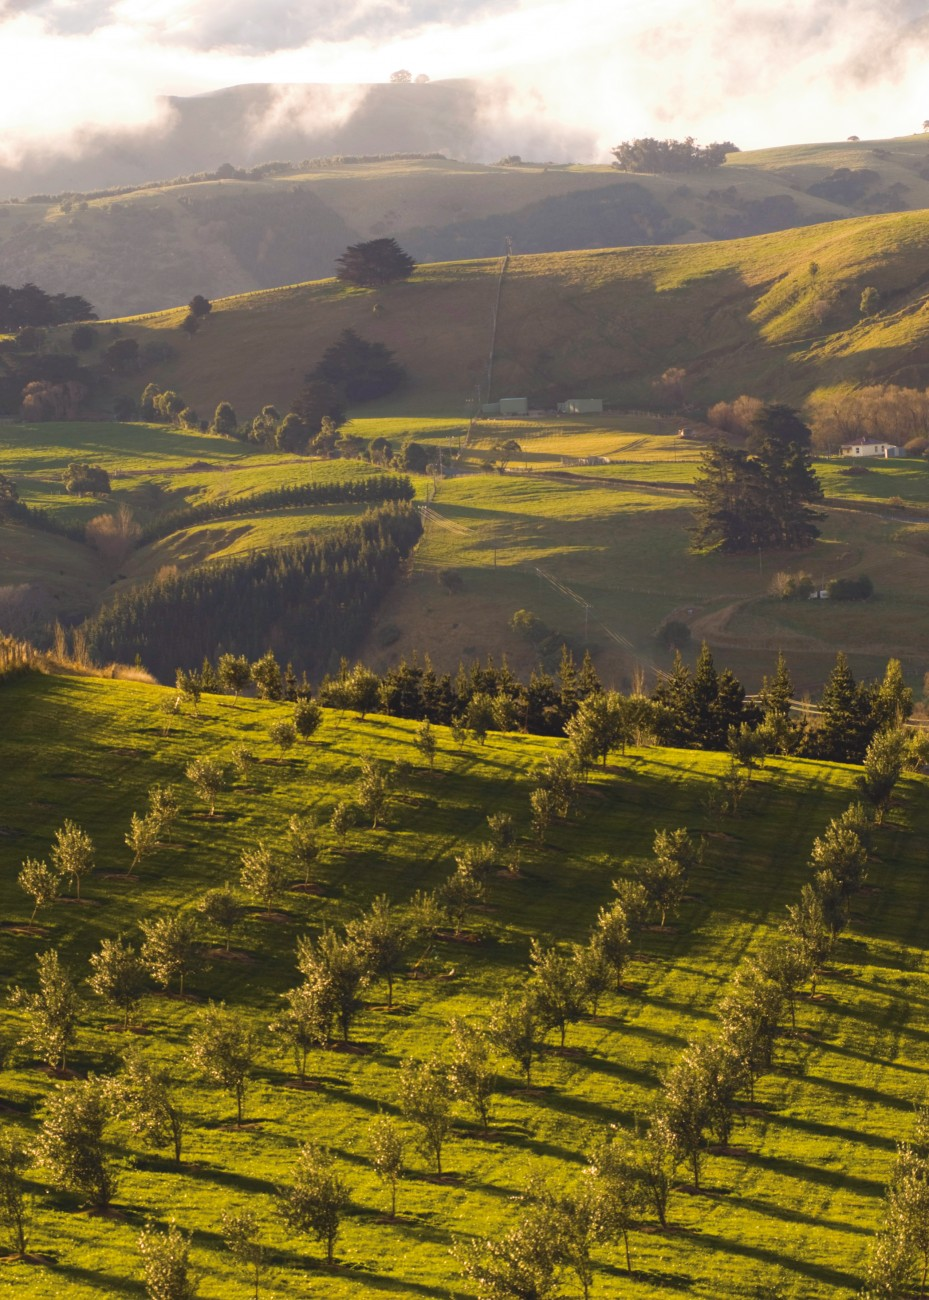 An undemanding and hardy tree, the olive seems ideal for New Zealand soil and climate, like in these hills above Akaroa. The production of oil is still relatively small and the industry young, but when it comes to quality our oils can successfully compete with the best in the world.